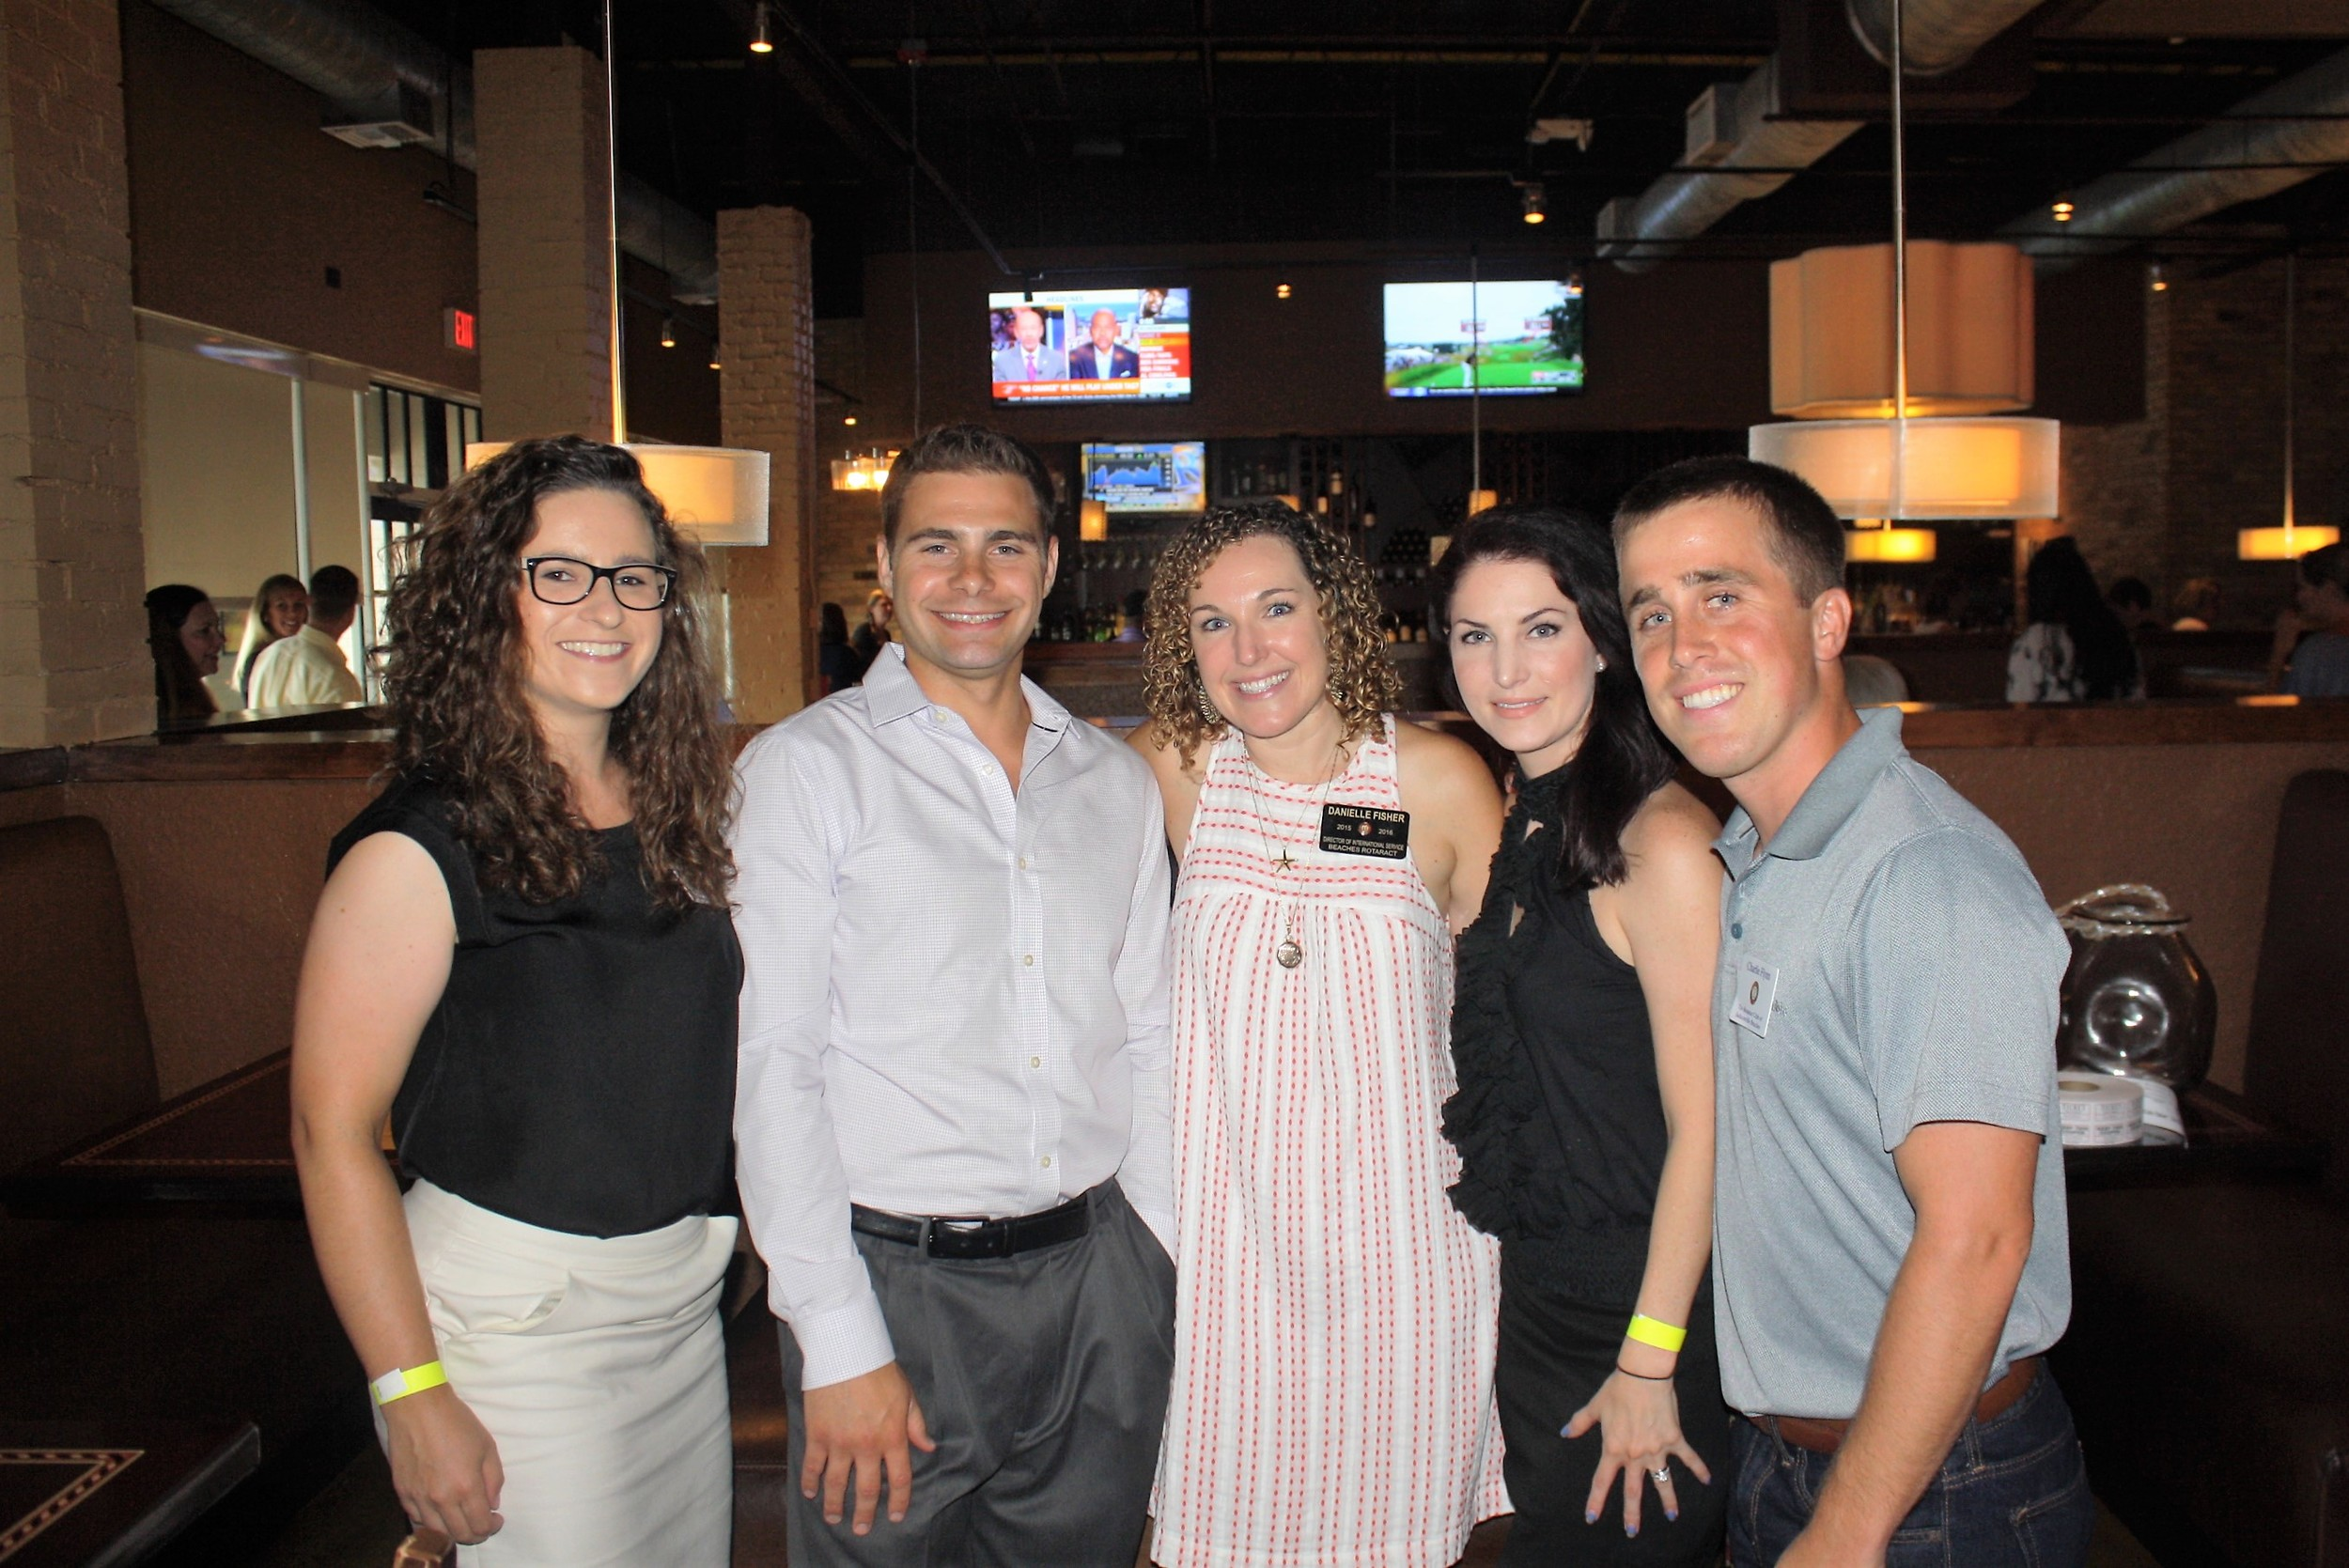 Beaches Rotaract wine tasting committee members included Magda Cichon, Anthony Sifakis, Danielle Fisher, Rachael Daven and Charlie Flynn.